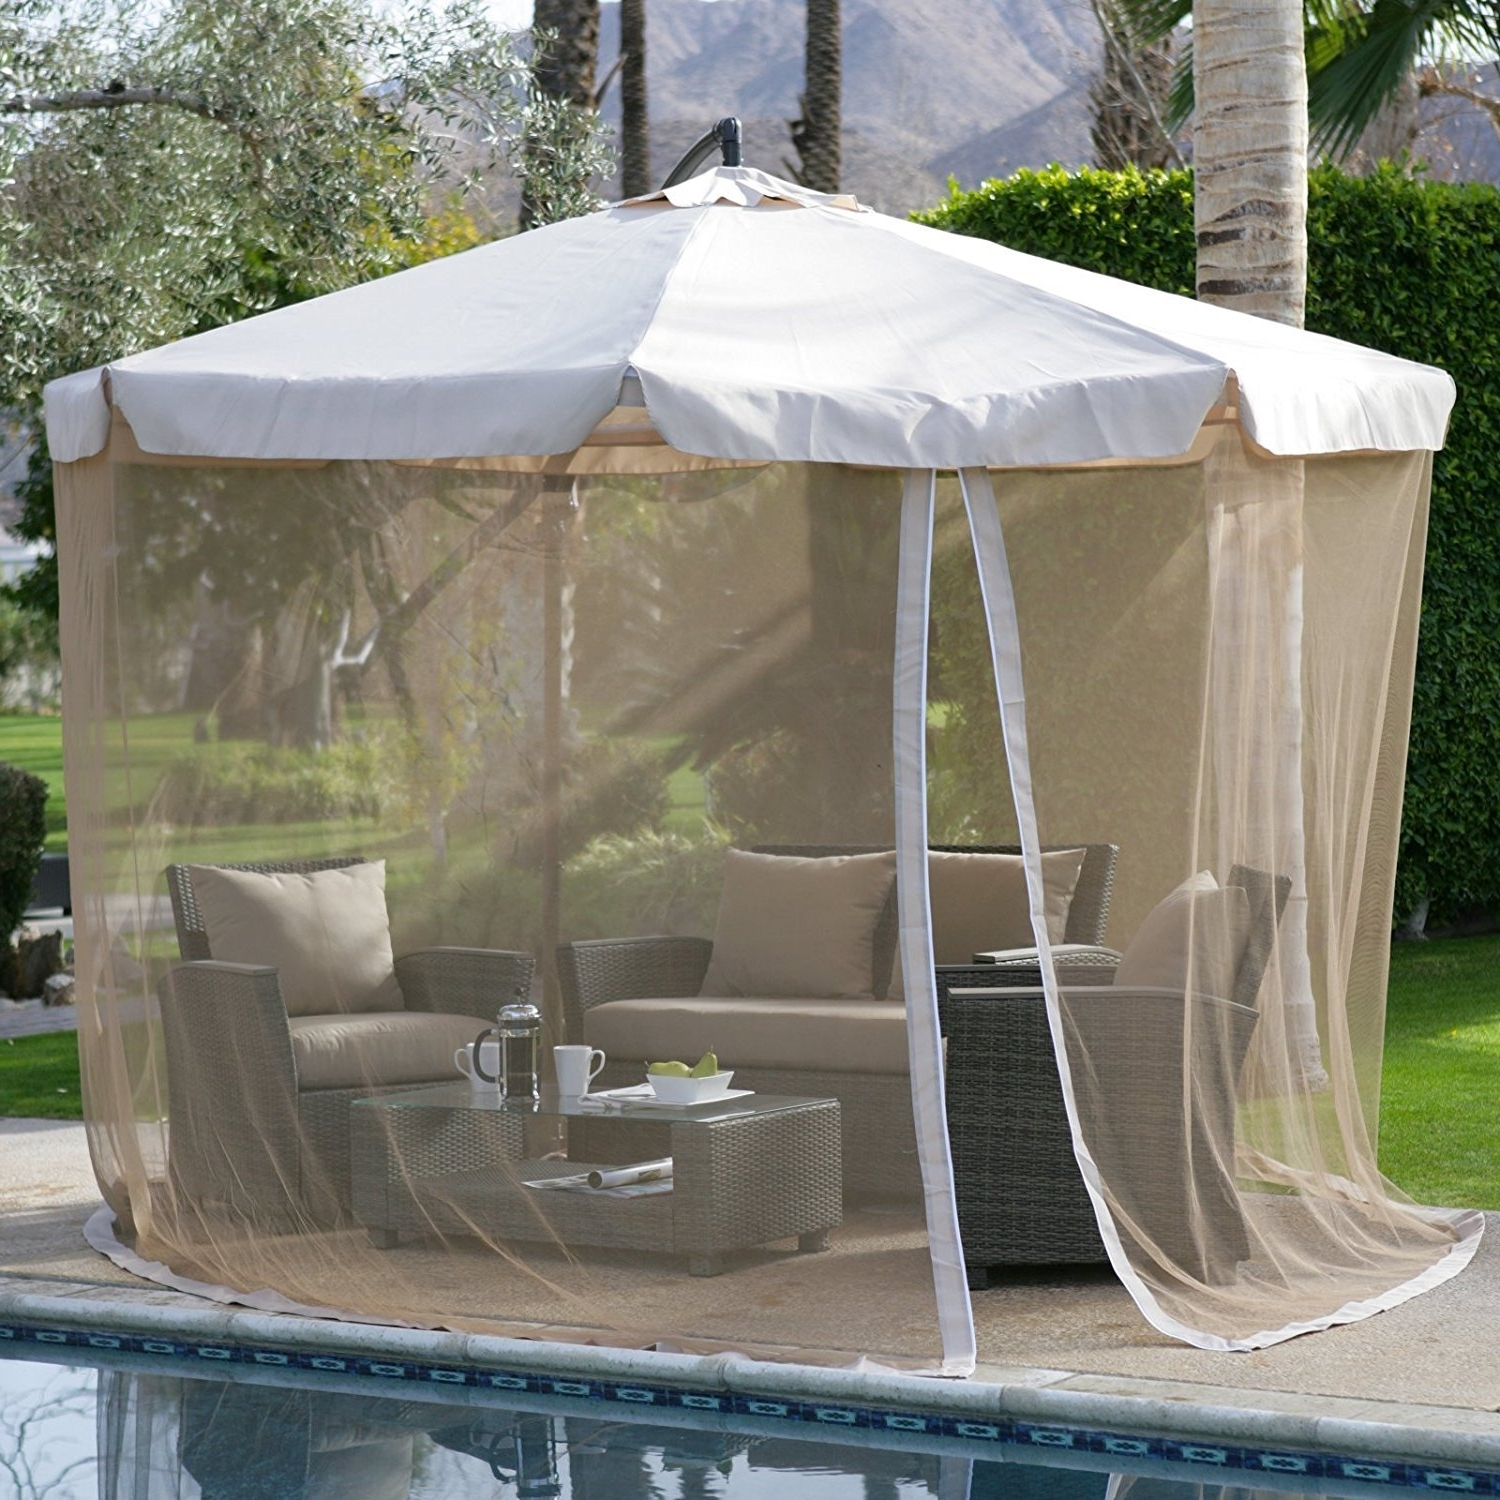 Most Recent Patio Umbrellas With Netting Throughout 11' Outdoor Patio Offset Umbrella W/ Netting And 50 Similar Items (View 7 of 20)